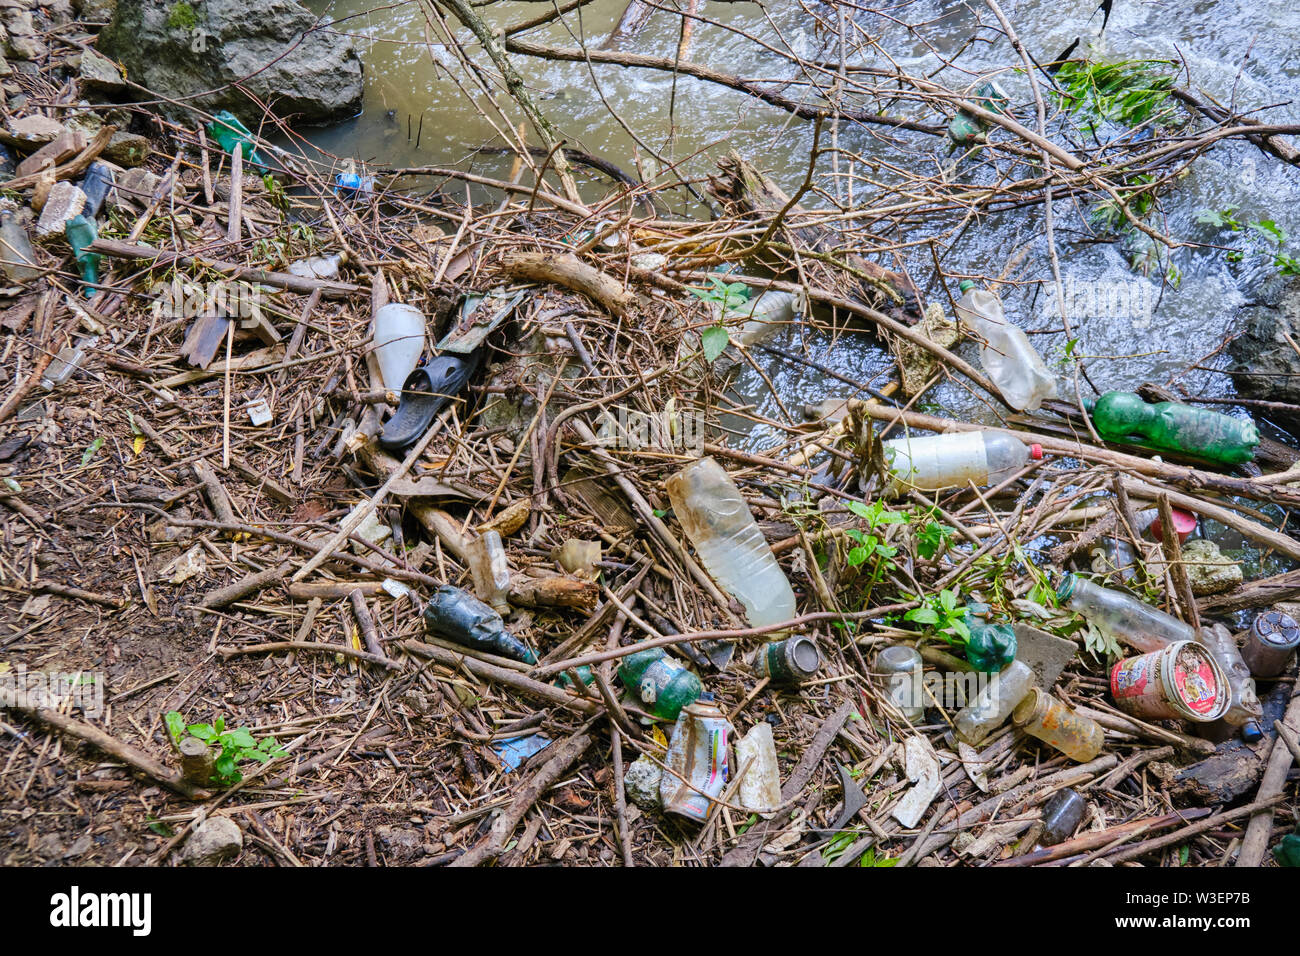 Tureni, Romania - June 24, 2019: River pollution with plastic bottles and human debris / garbage in Tureni-Copaceni gorge, Cluj county, Romania. - Stock Image